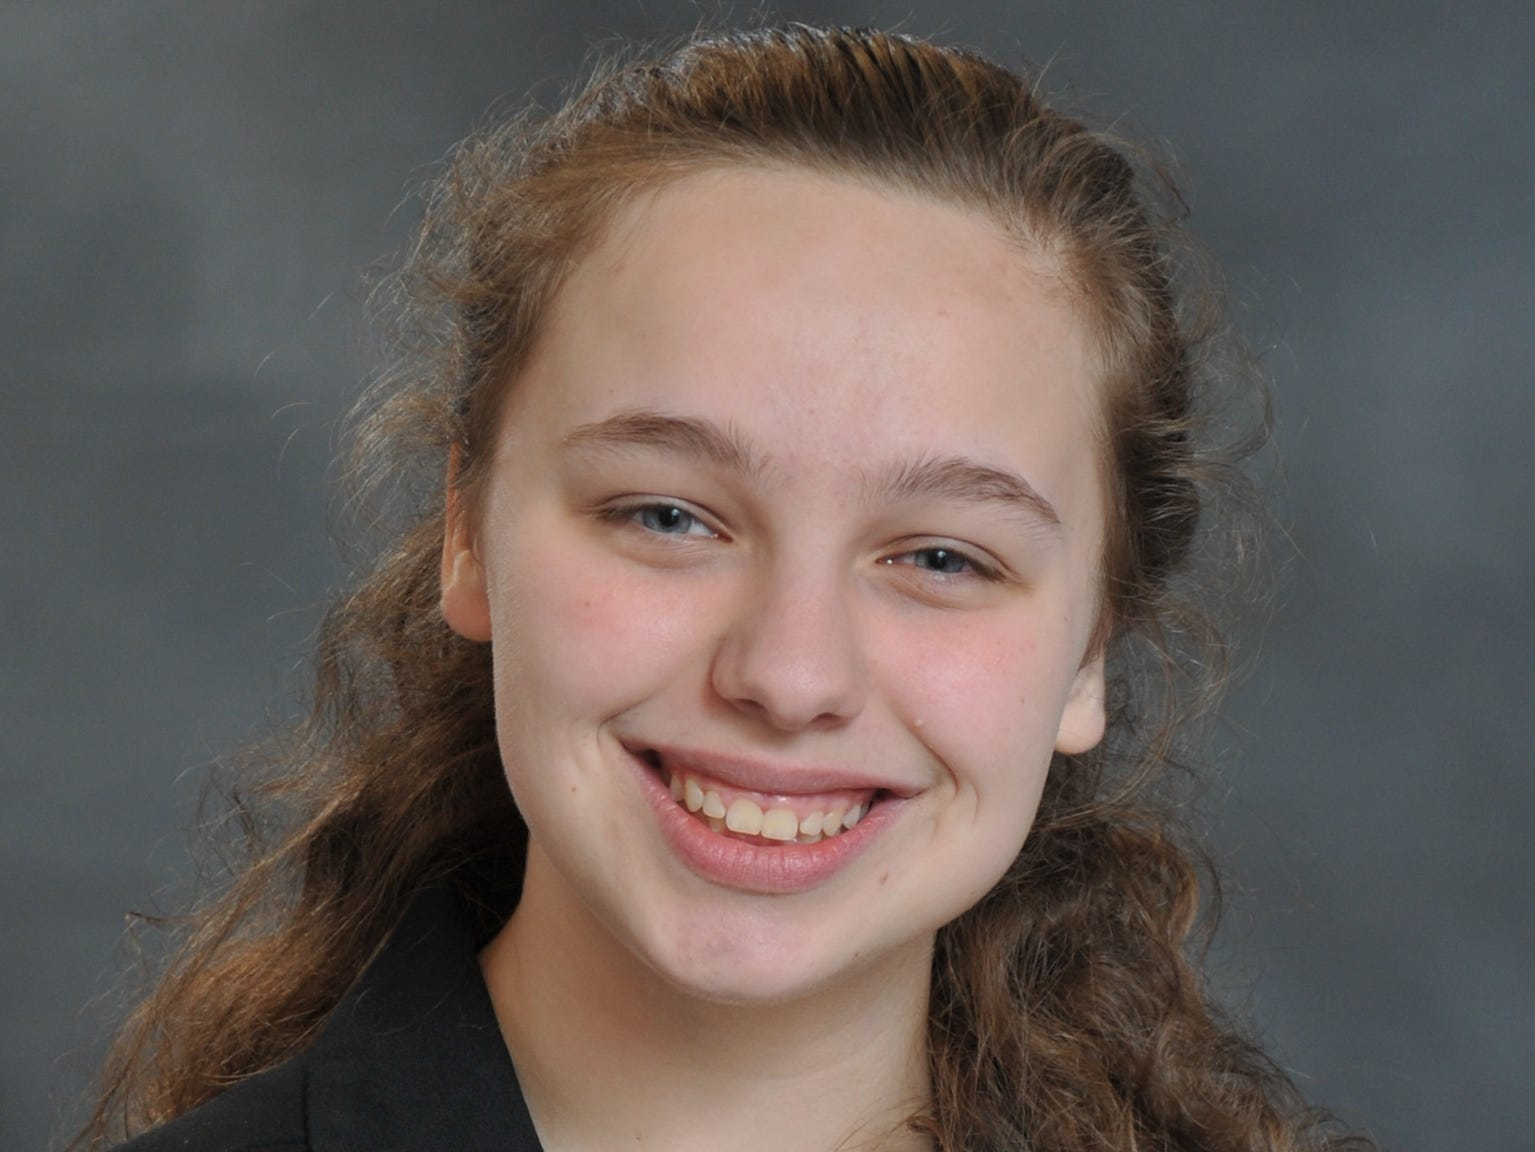 Olivia Riek, Northeastern High School, Distinguished Young Women of York County participant.